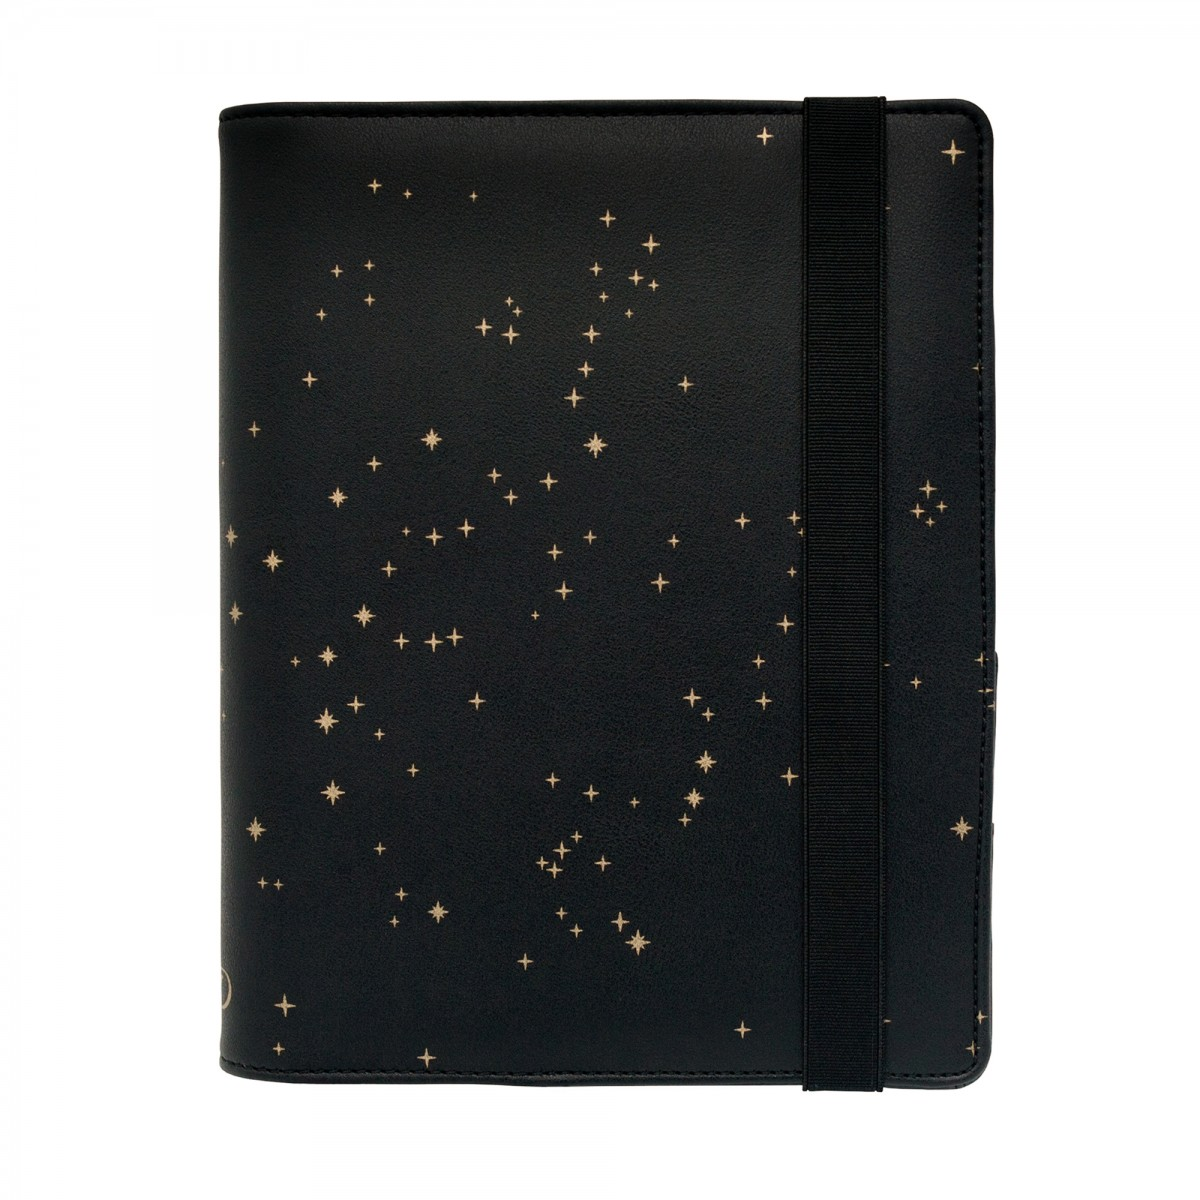 DISCAGENDA CONSTELLATIONS A5 ELASTIC STRAP CLOSURE